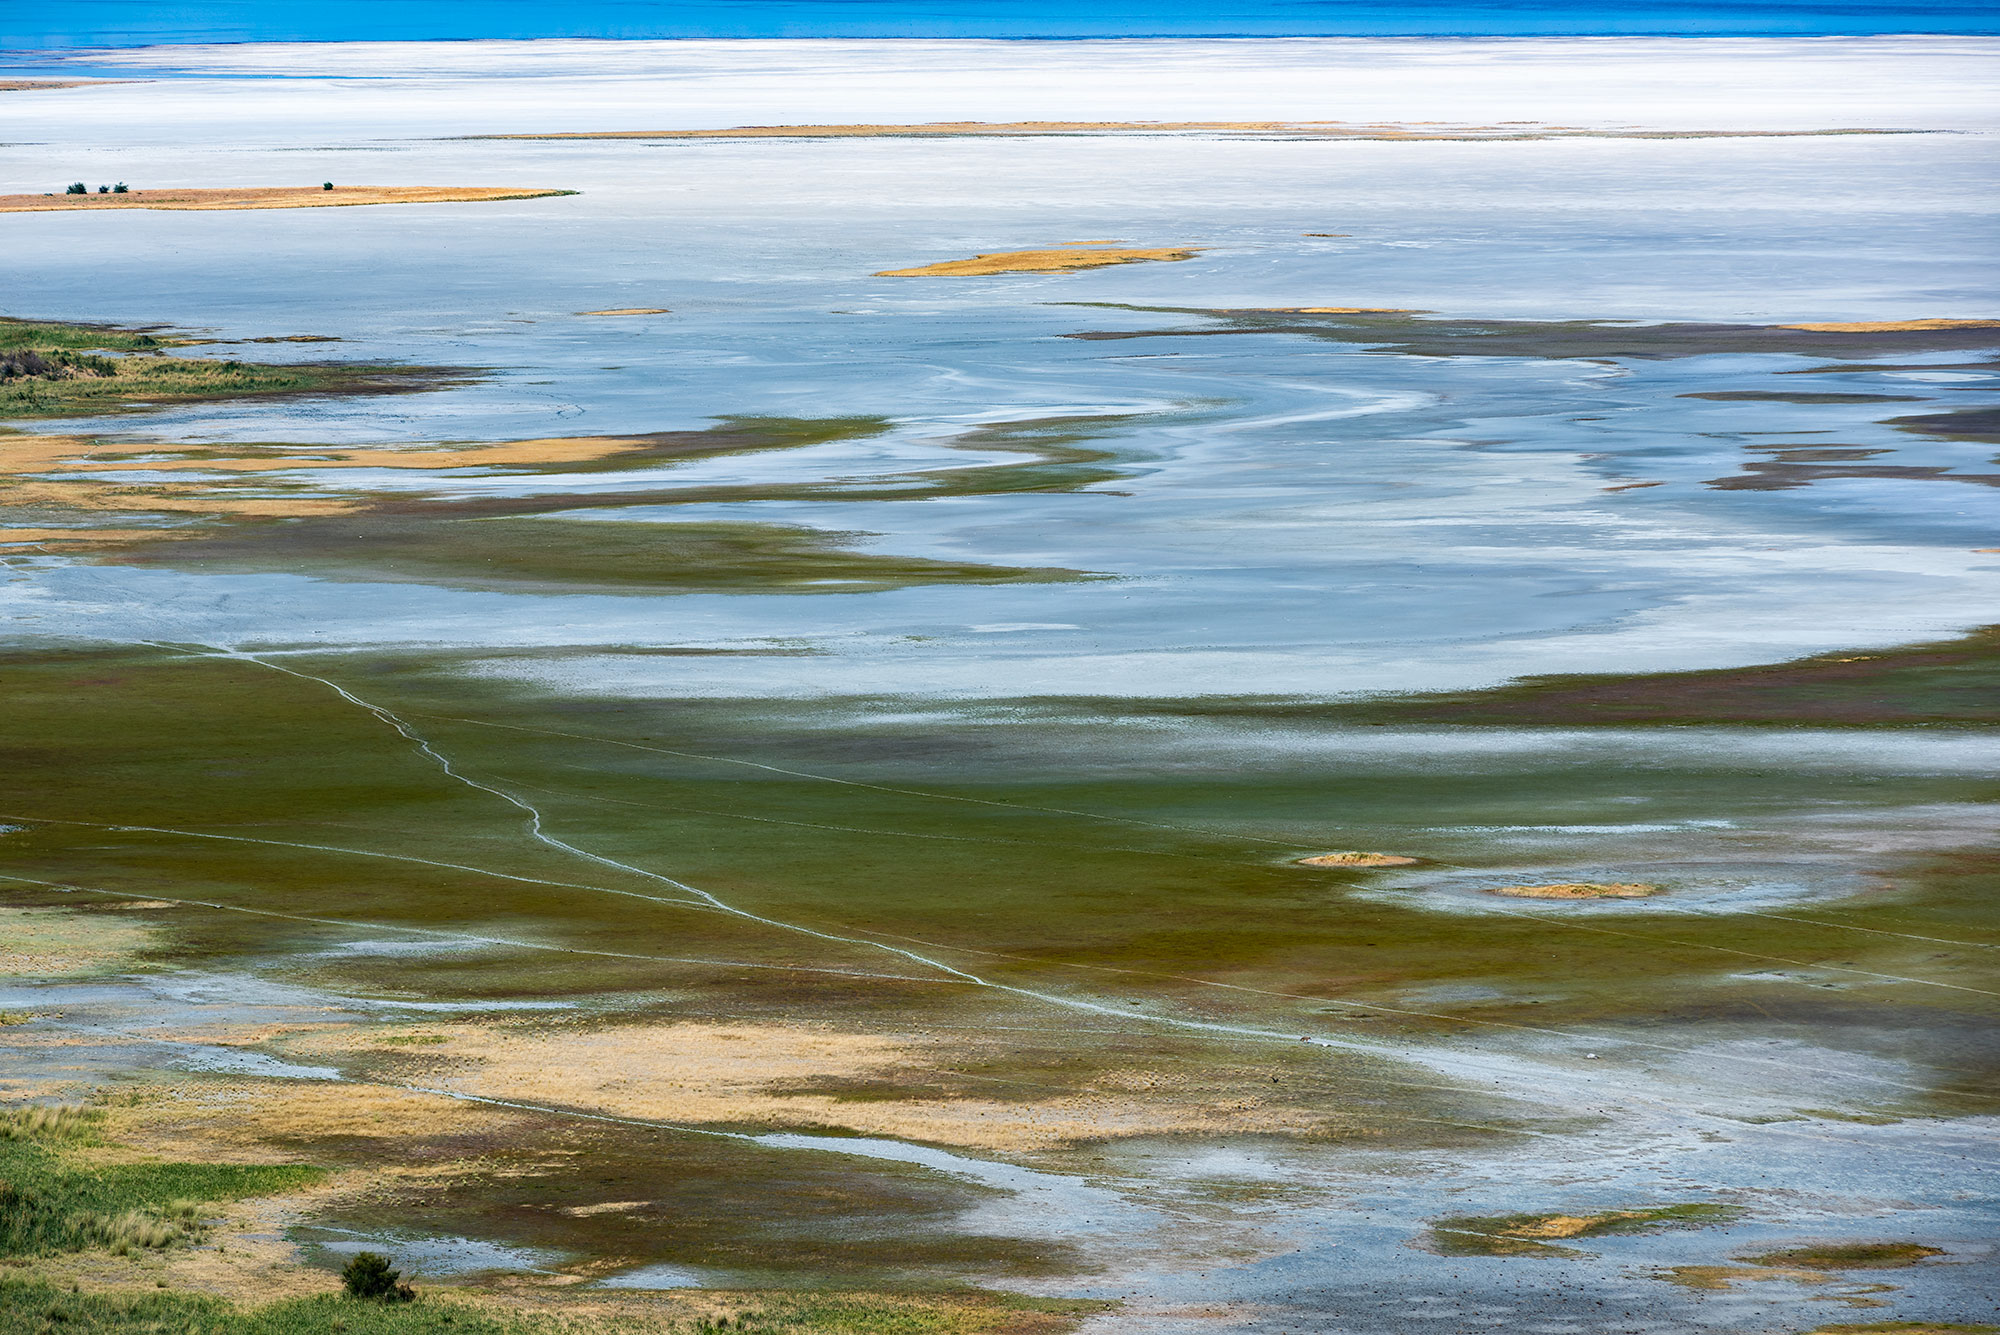 Landscape photography of Antelope Island located next to Salt Lake City in the US.